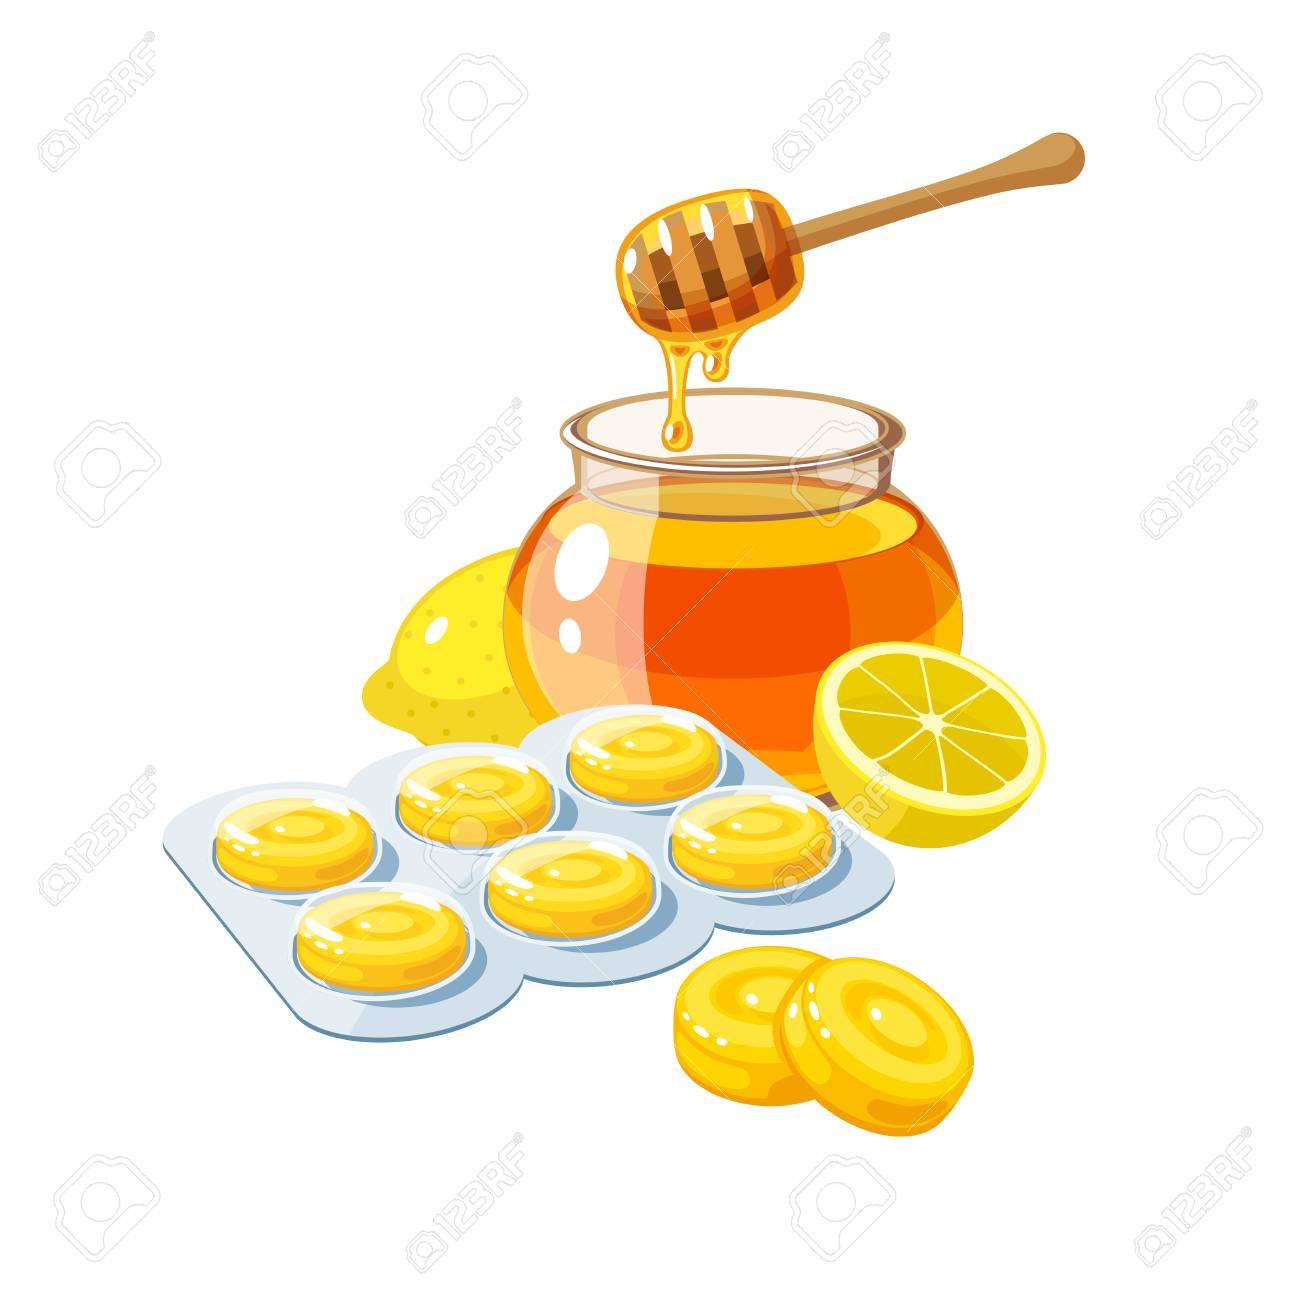 Cough drops  Sore throat remedy, package of yellow lozenges,